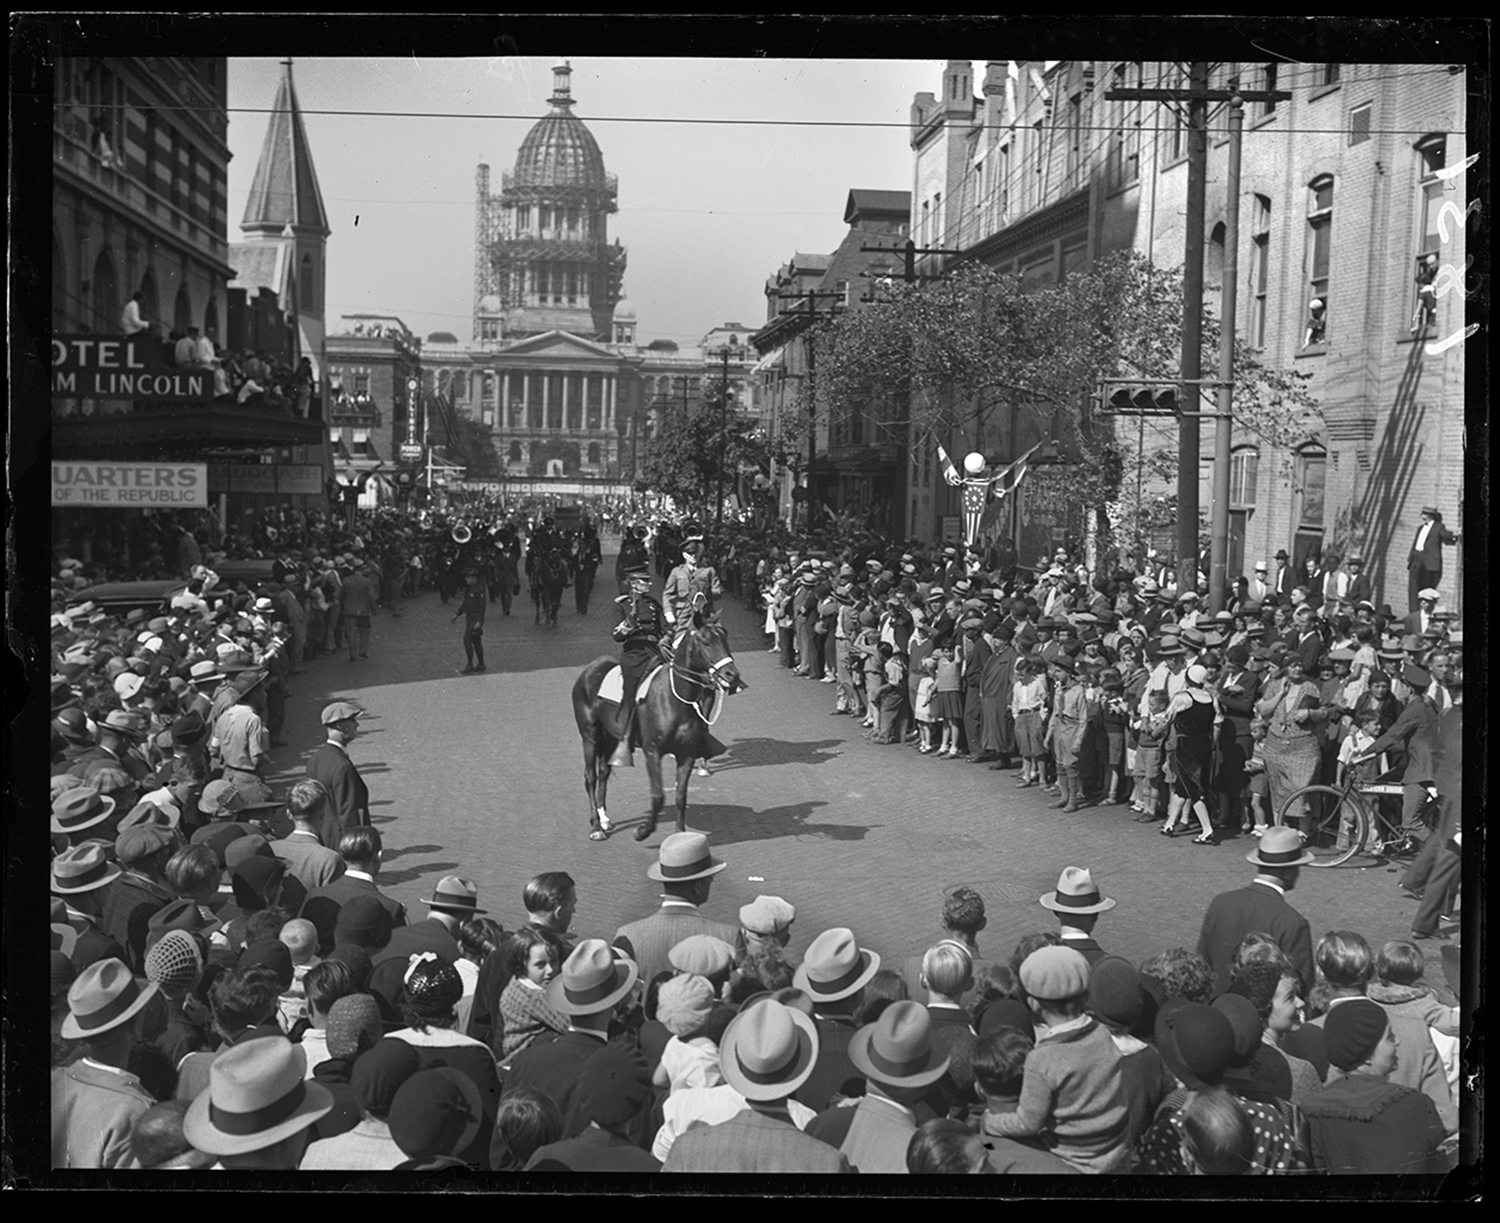 Grand Army of the Republic (G.A.R.) encampment and national convention Sept. 22, 1932. Parade on Capitol Avenue at Sixth Street, facing west toward capitol. Hotel Abraham Lincoln on left. Col. William J. Butler, grandson of Gen. John McClernand, leads the parade. File/The State Journal-Register